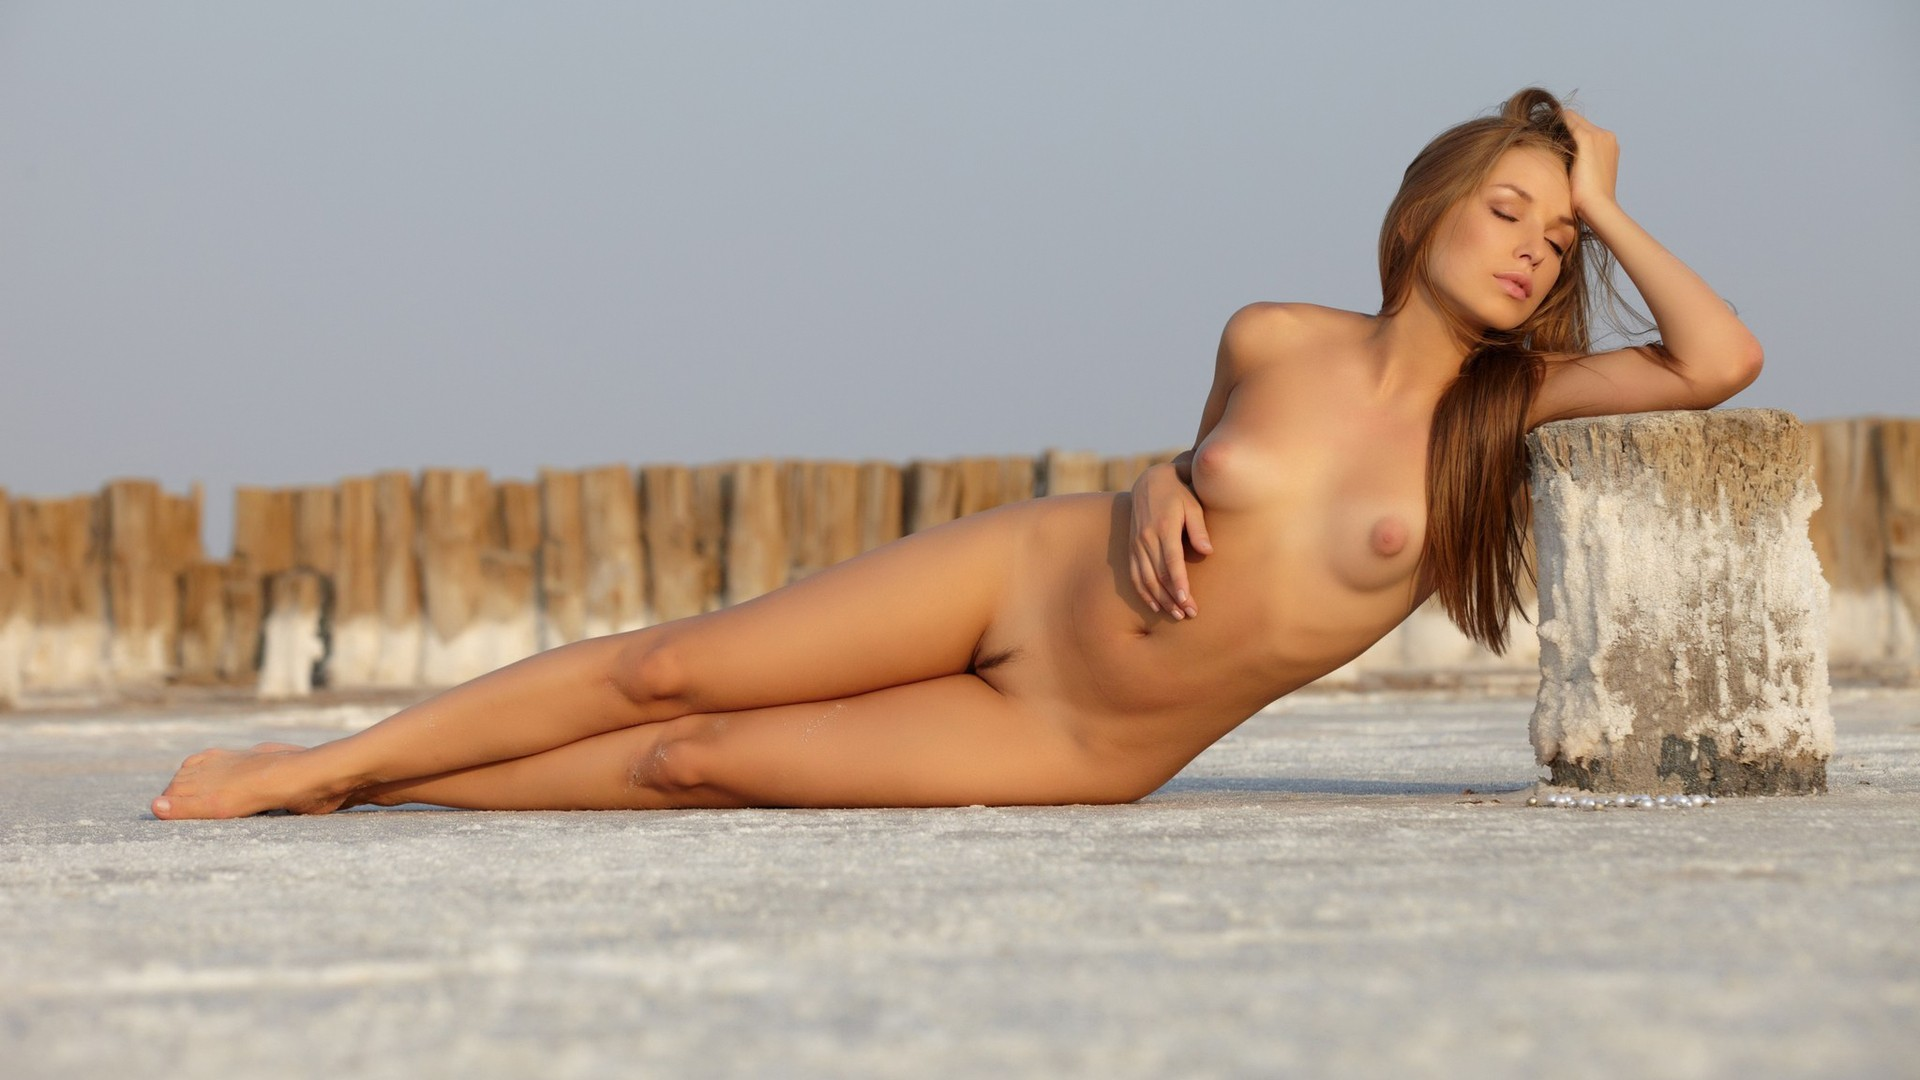 Naked women hd pictures